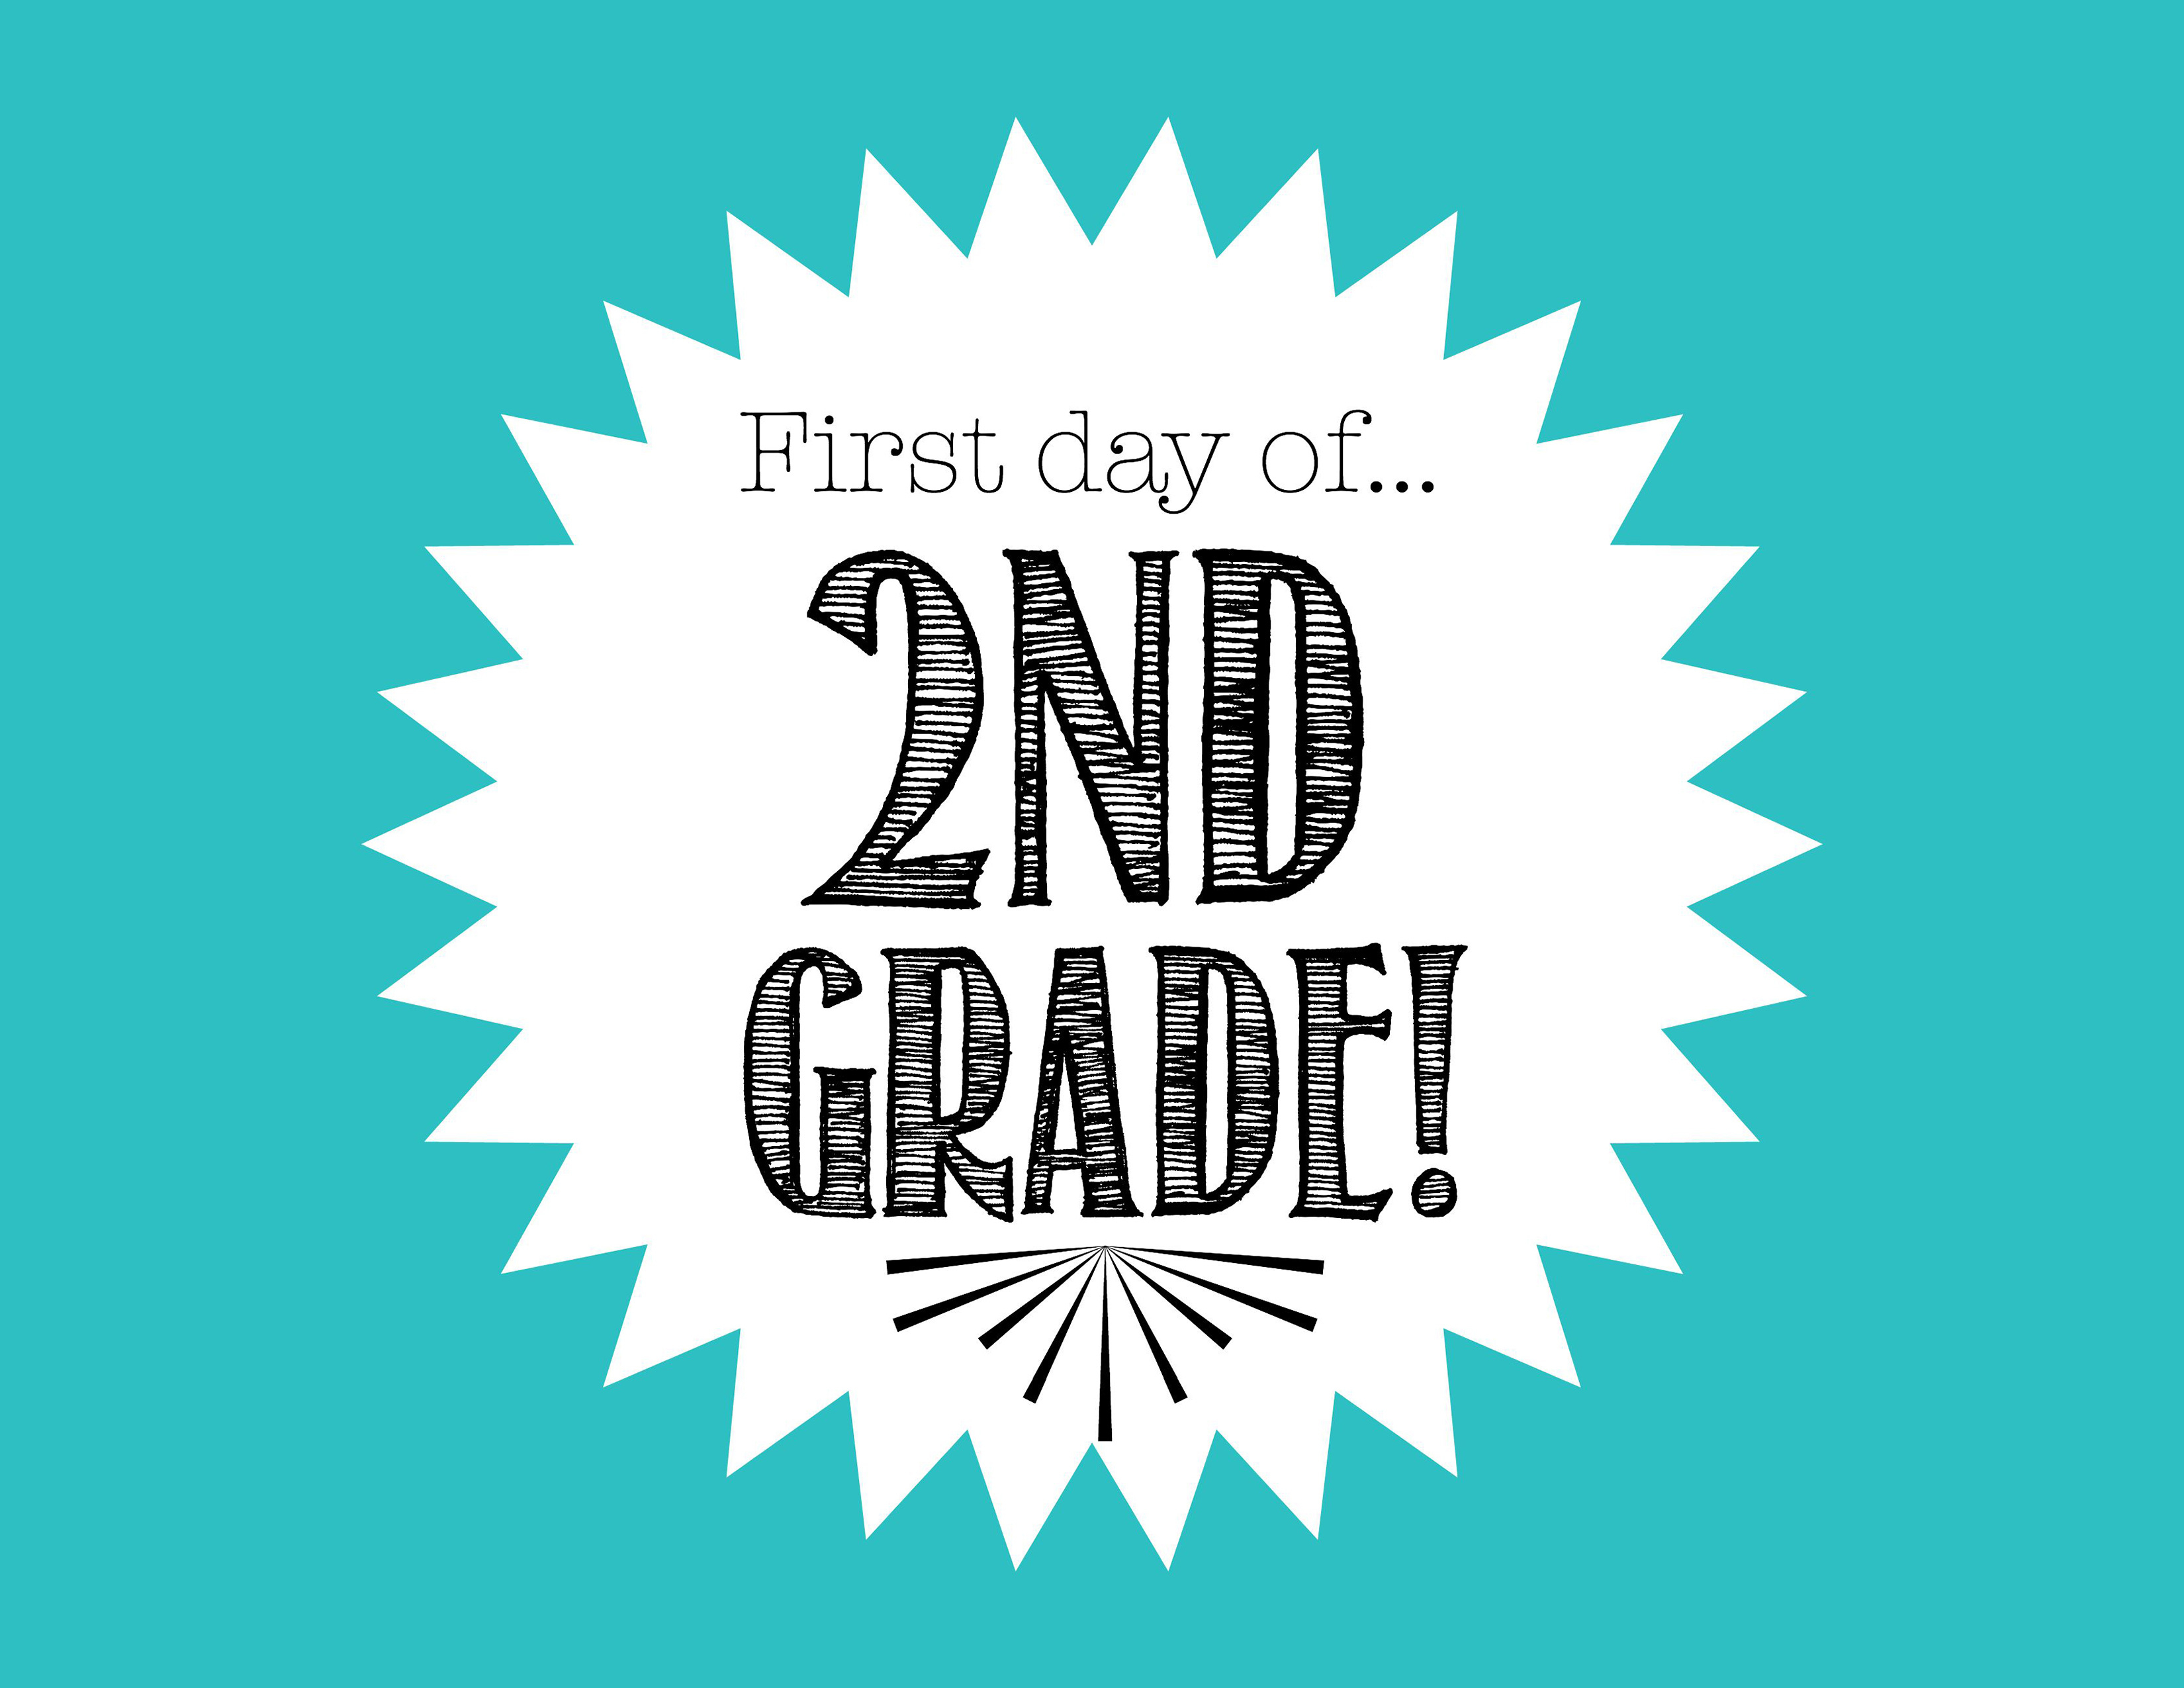 First Day Of 2Nd Grade Free Back To School Printable - Freebies2Deals - First Day Of Second Grade Free Printable Sign